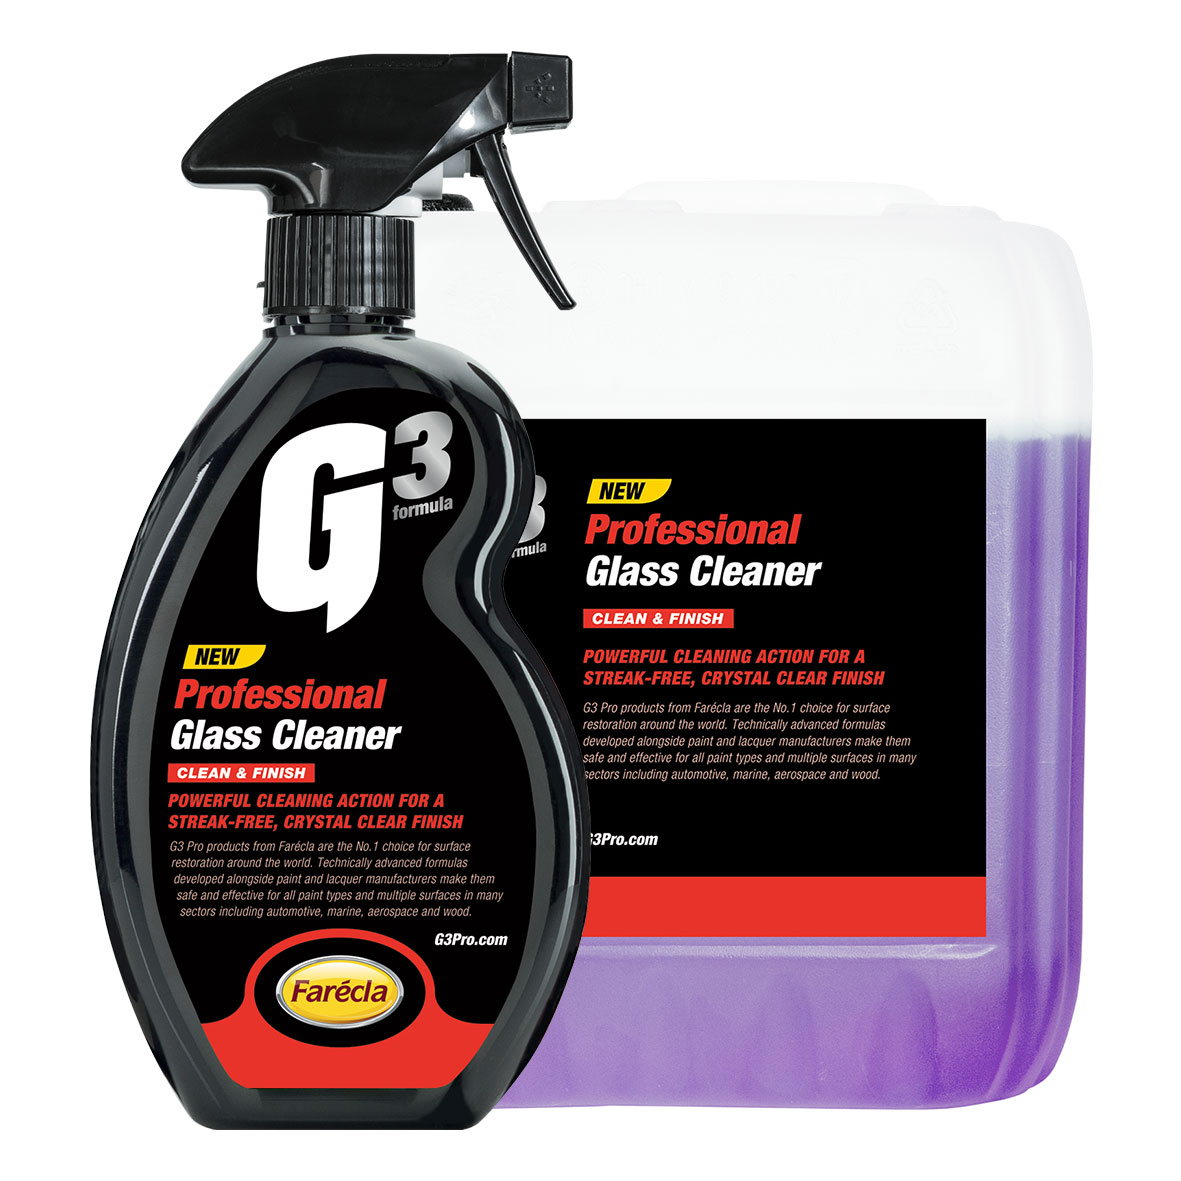 G3 Pro Glass Cleaner